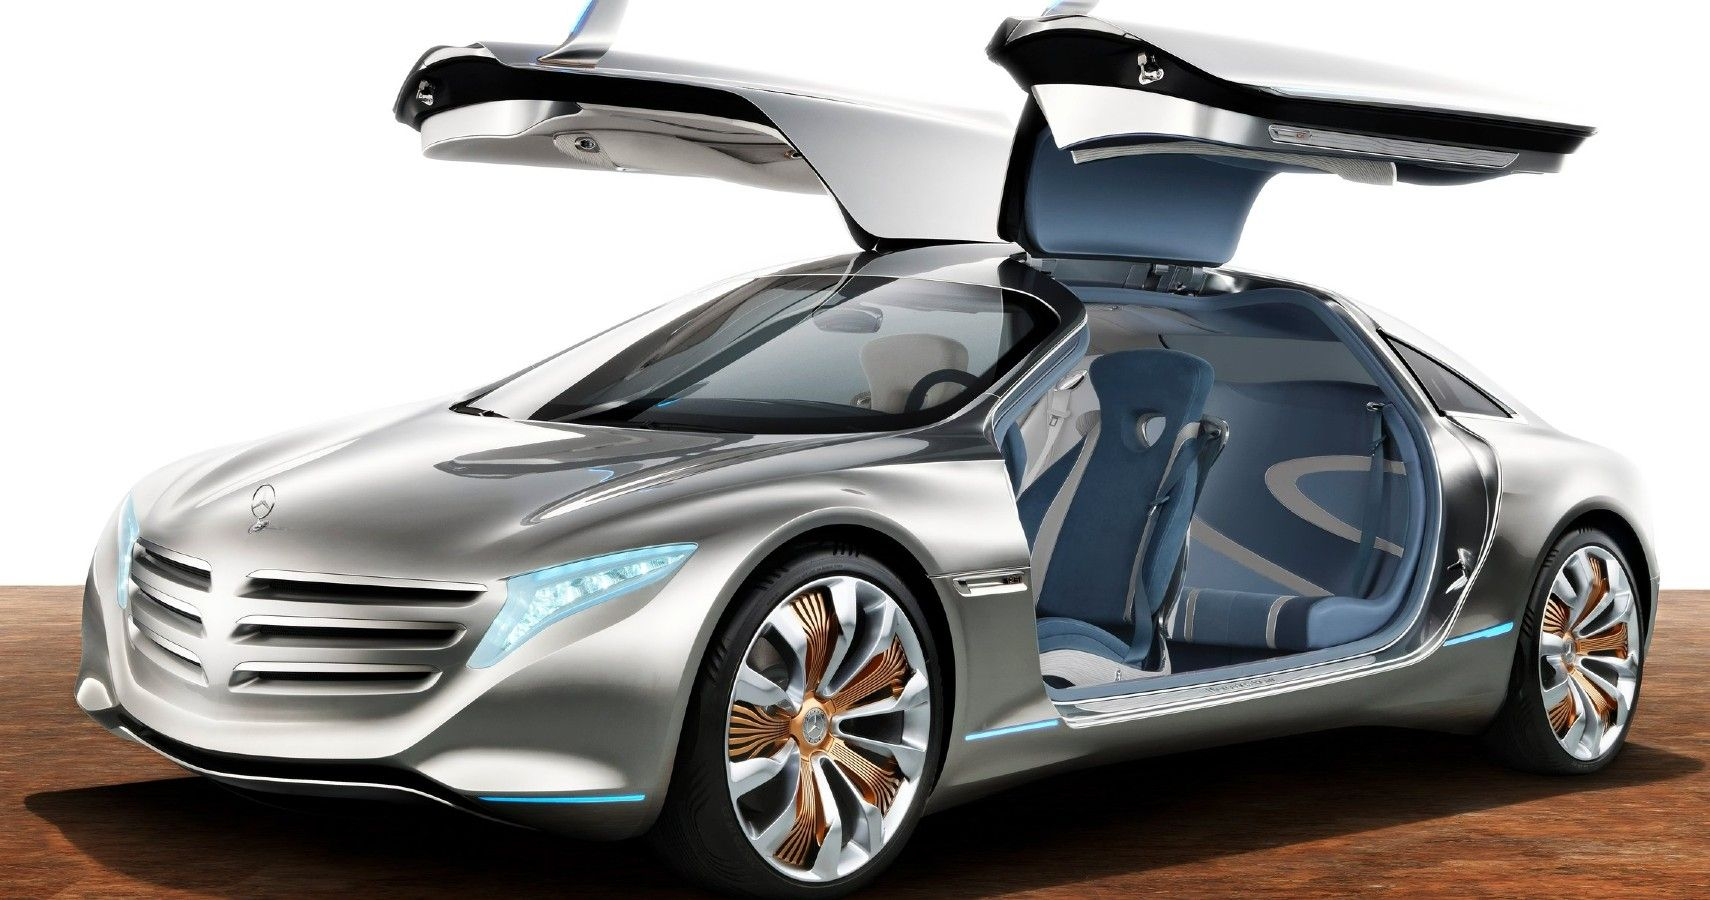 Here's The Coolest Interior Feature Of The Mercedes-Benz F125 Concept Car